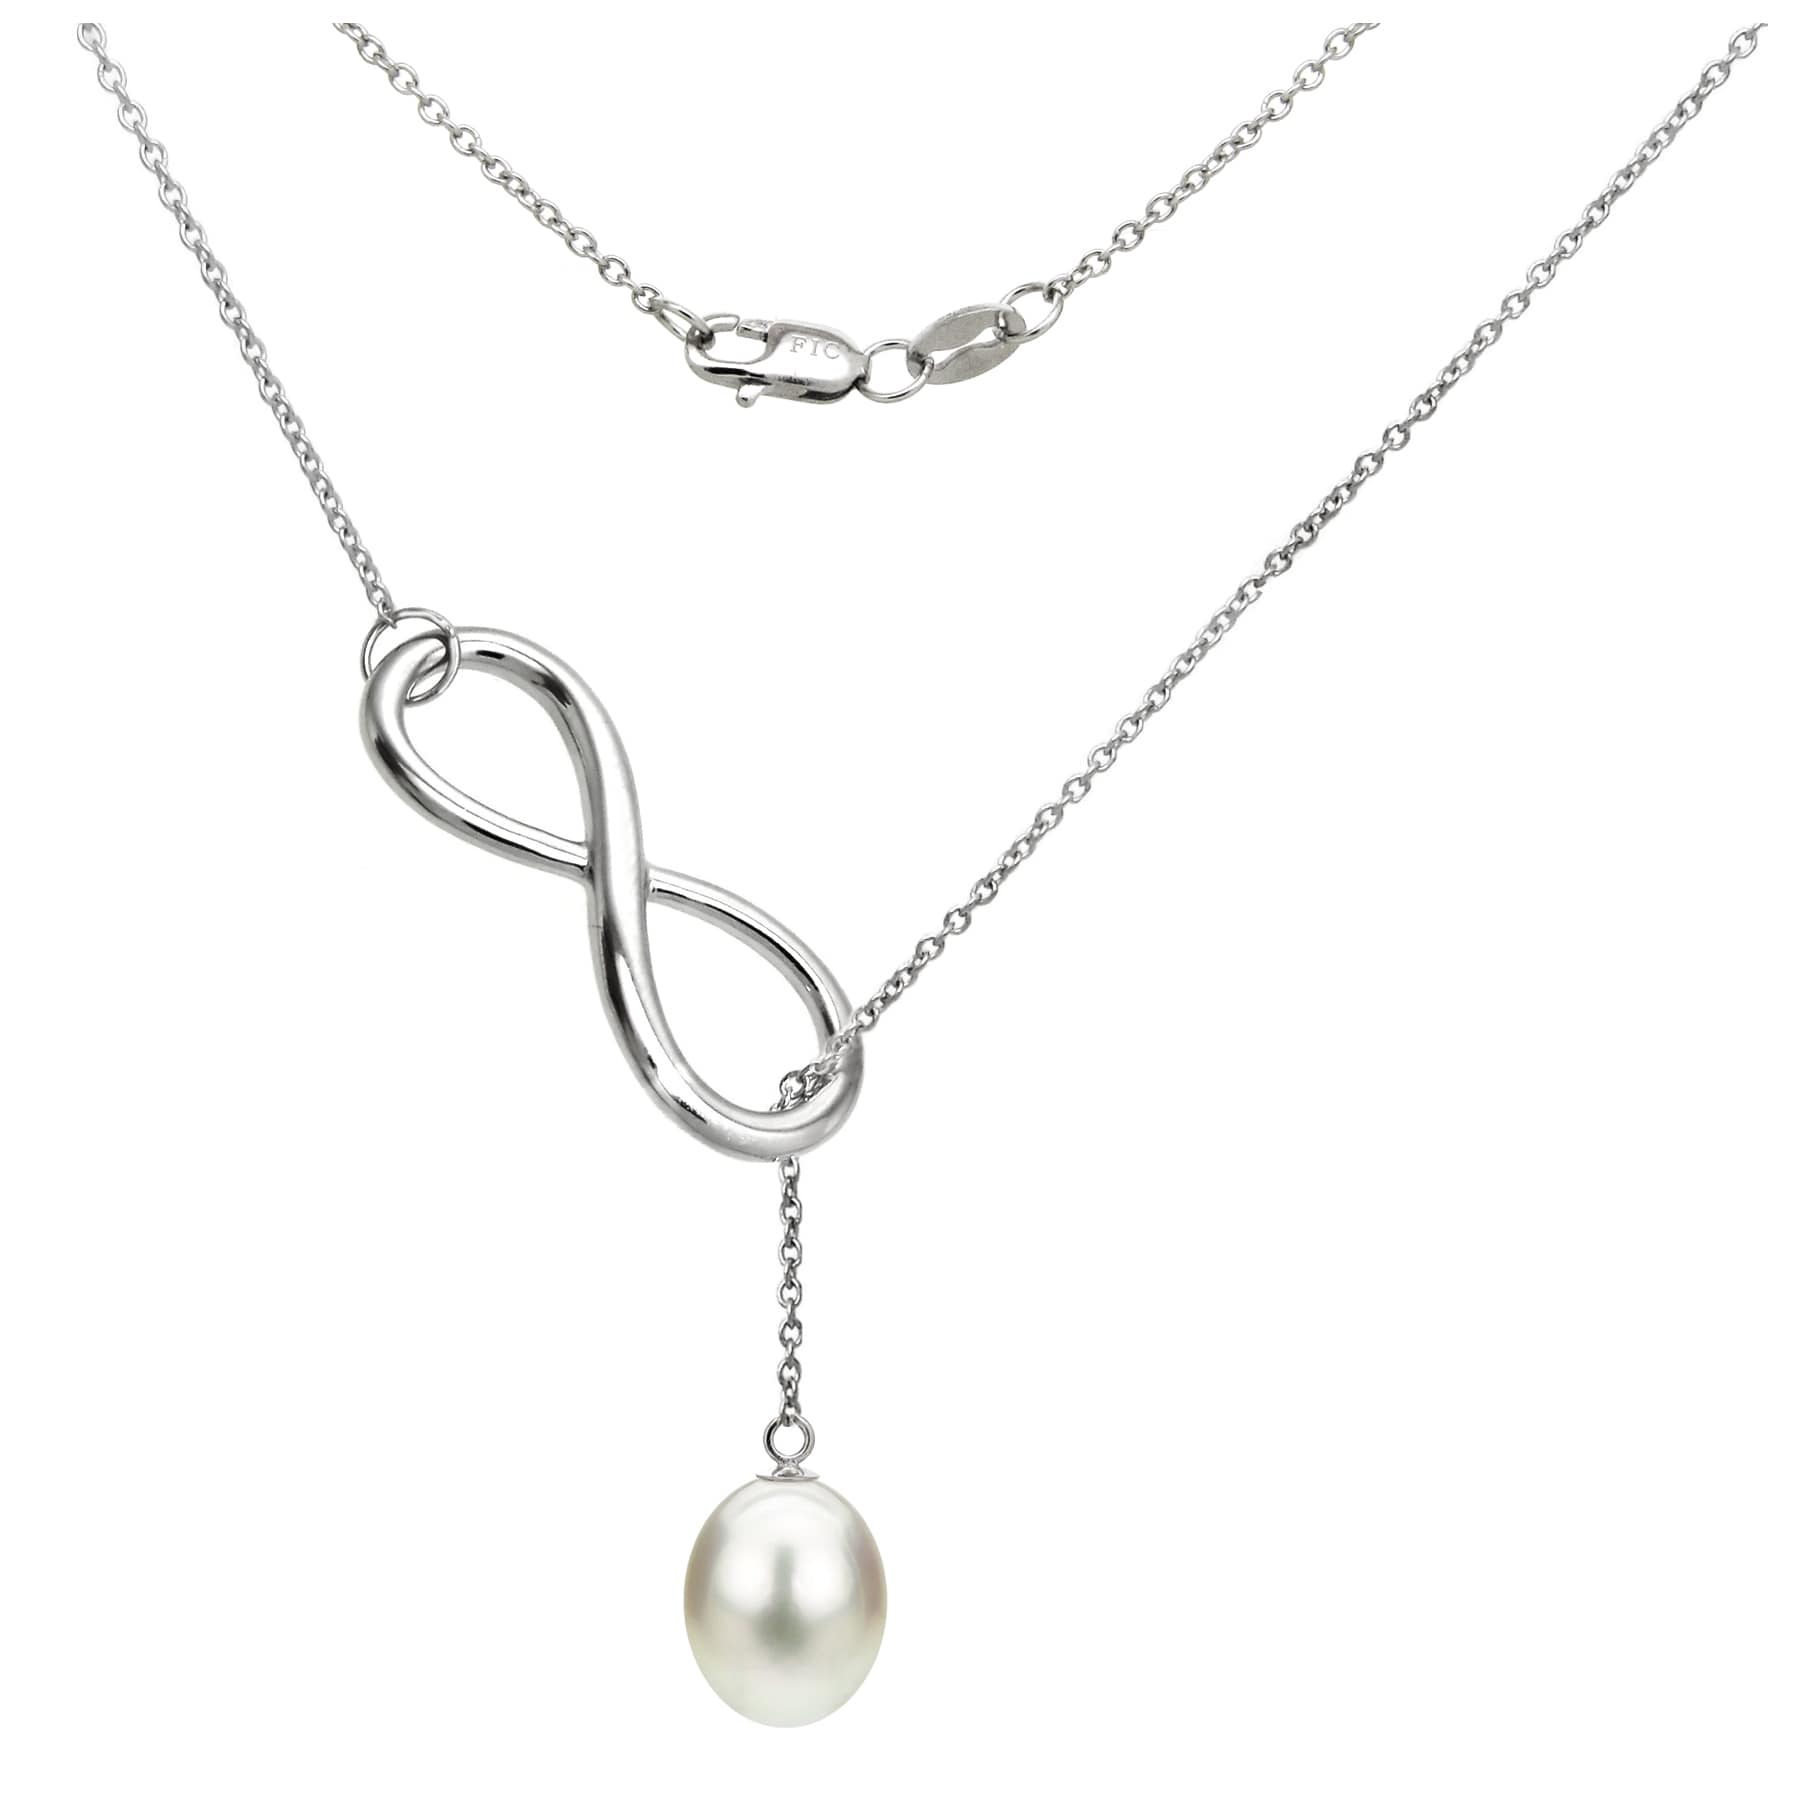 bd1aee2275a3c Buy Lariat Pearl Necklaces Online at Overstock | Our Best Necklaces ...